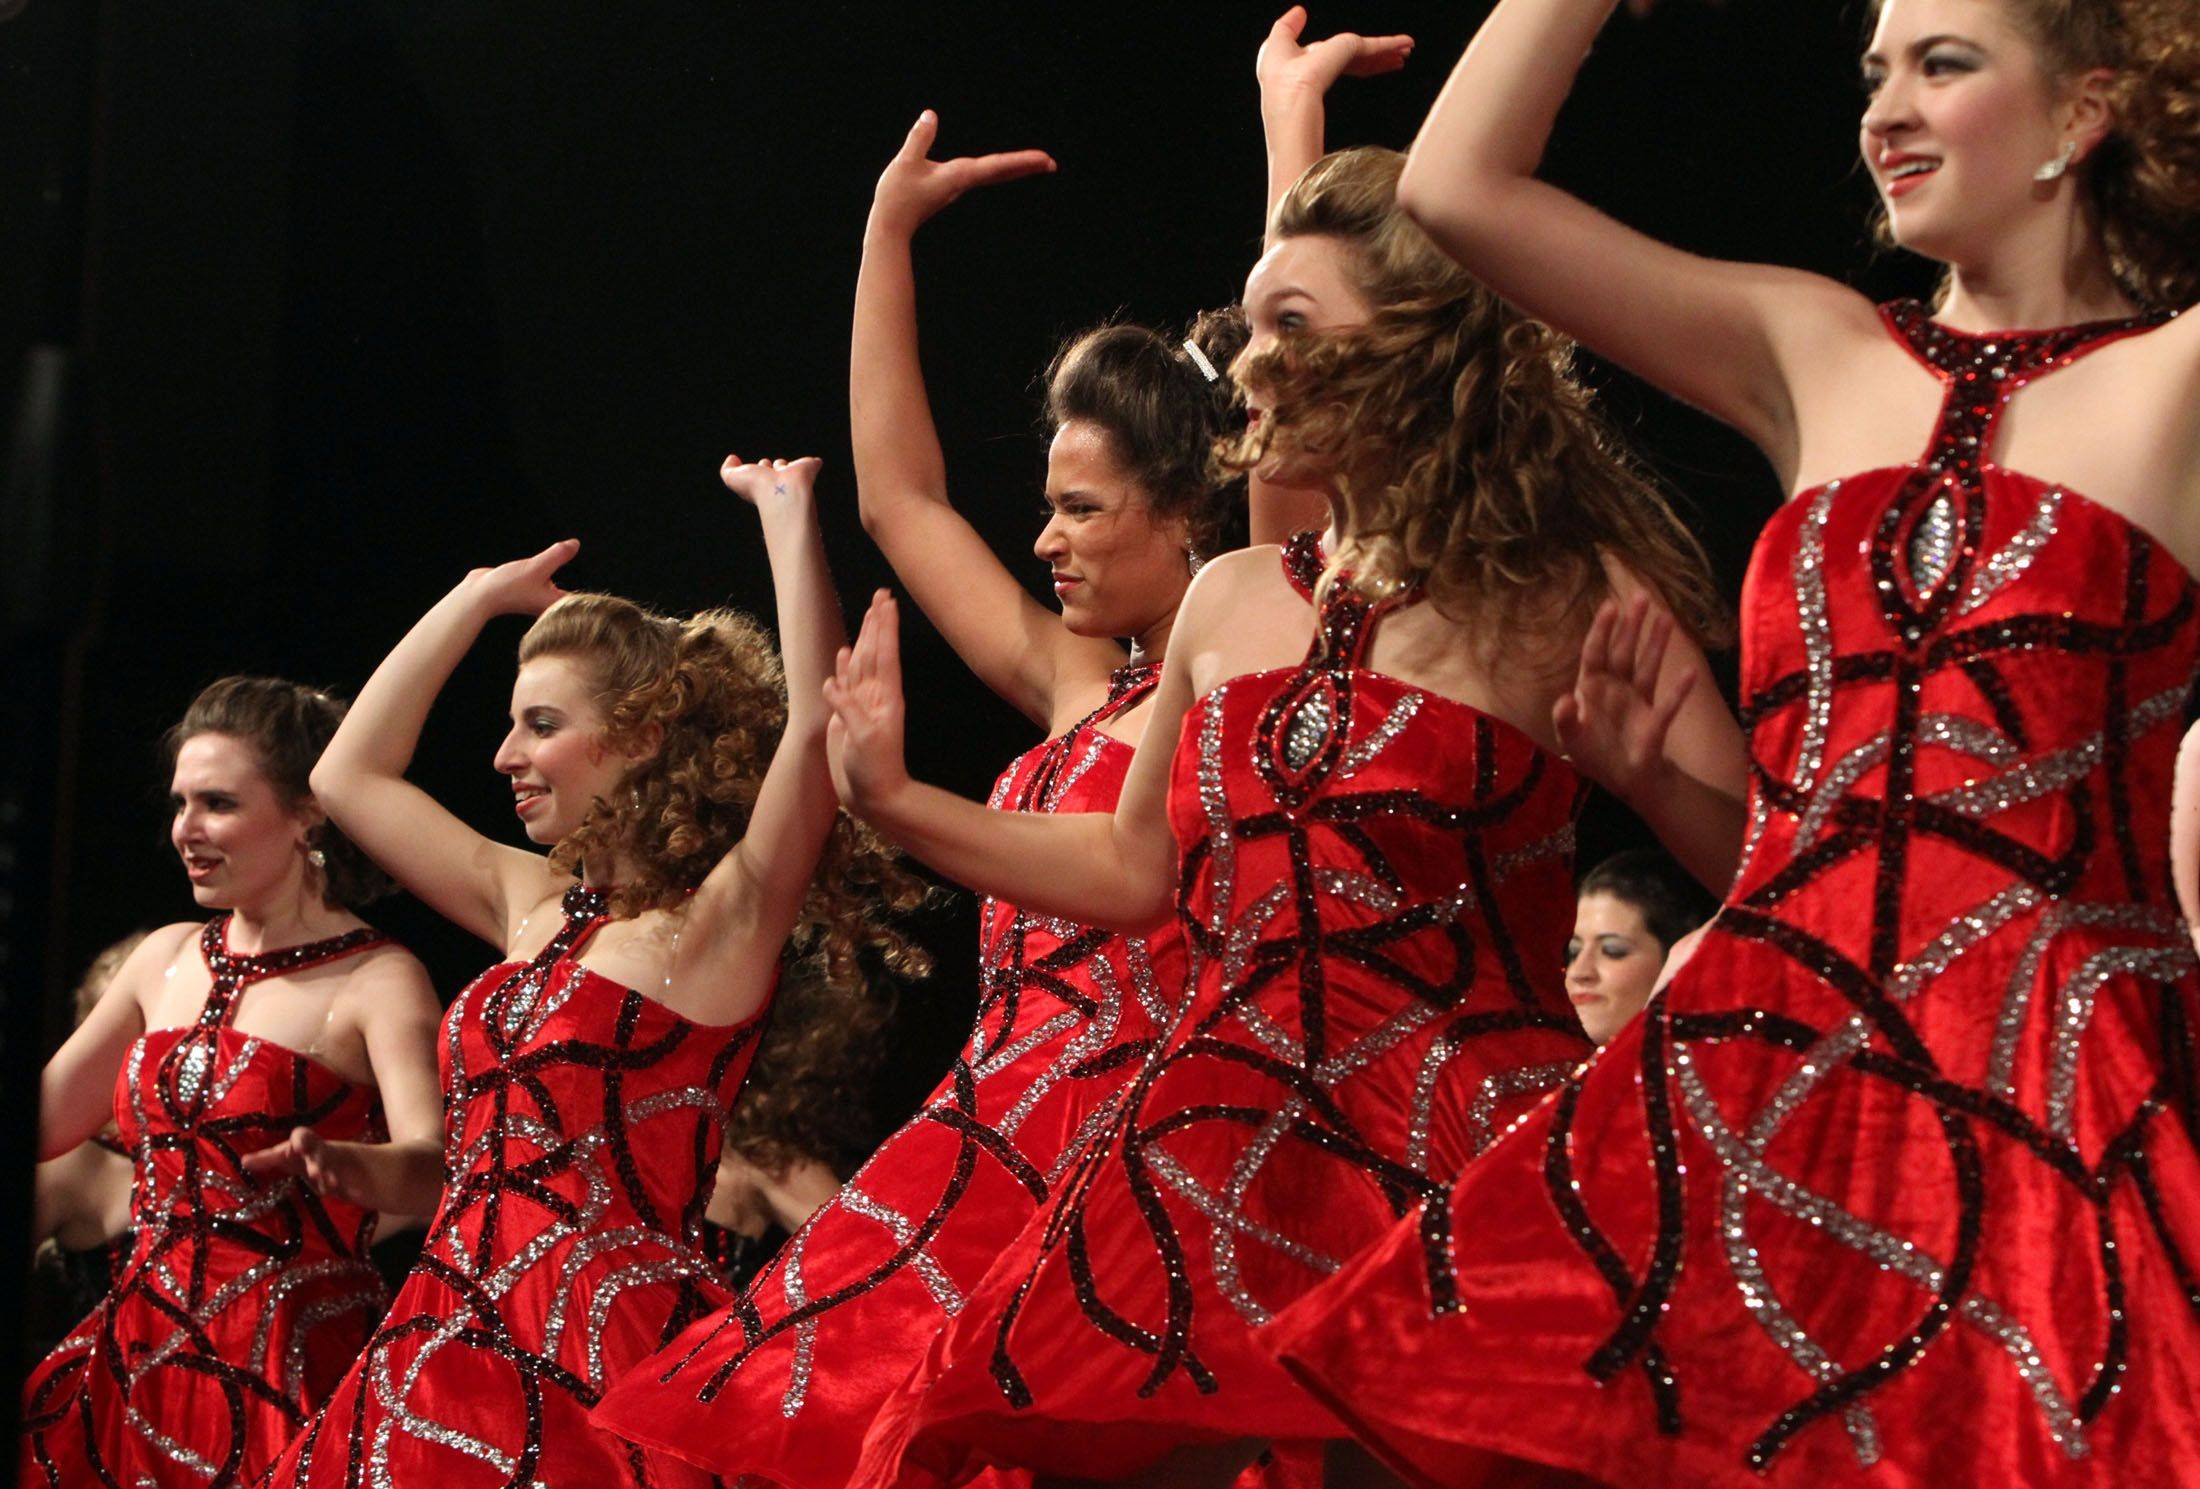 Wheaton Warrenville South competes in the festival division at the 18th annual Chicagoland Showcase choir competition at Hersey in Arlington Heights on Saturday.